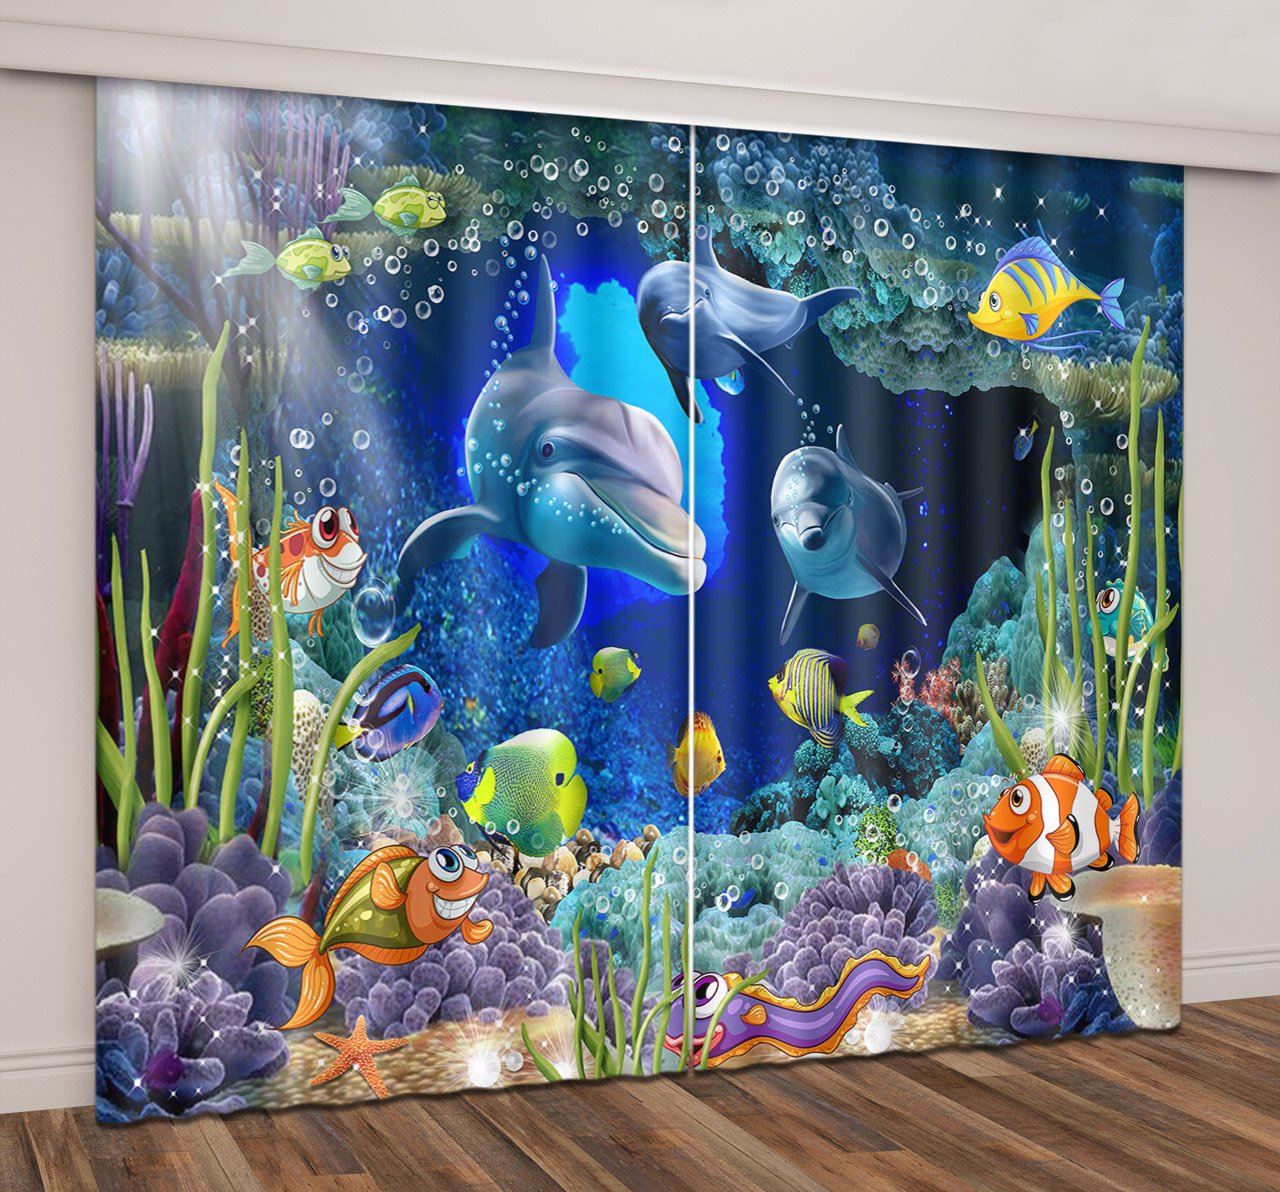 LB Underwater Window Curtains for Bedroom Living Room,Colorful Undersea with Fishes Dolphin Sea Plants Teen Kids Room Darkening Blackout Curtains Drapes 2 Panels,28 by 65 inch Length